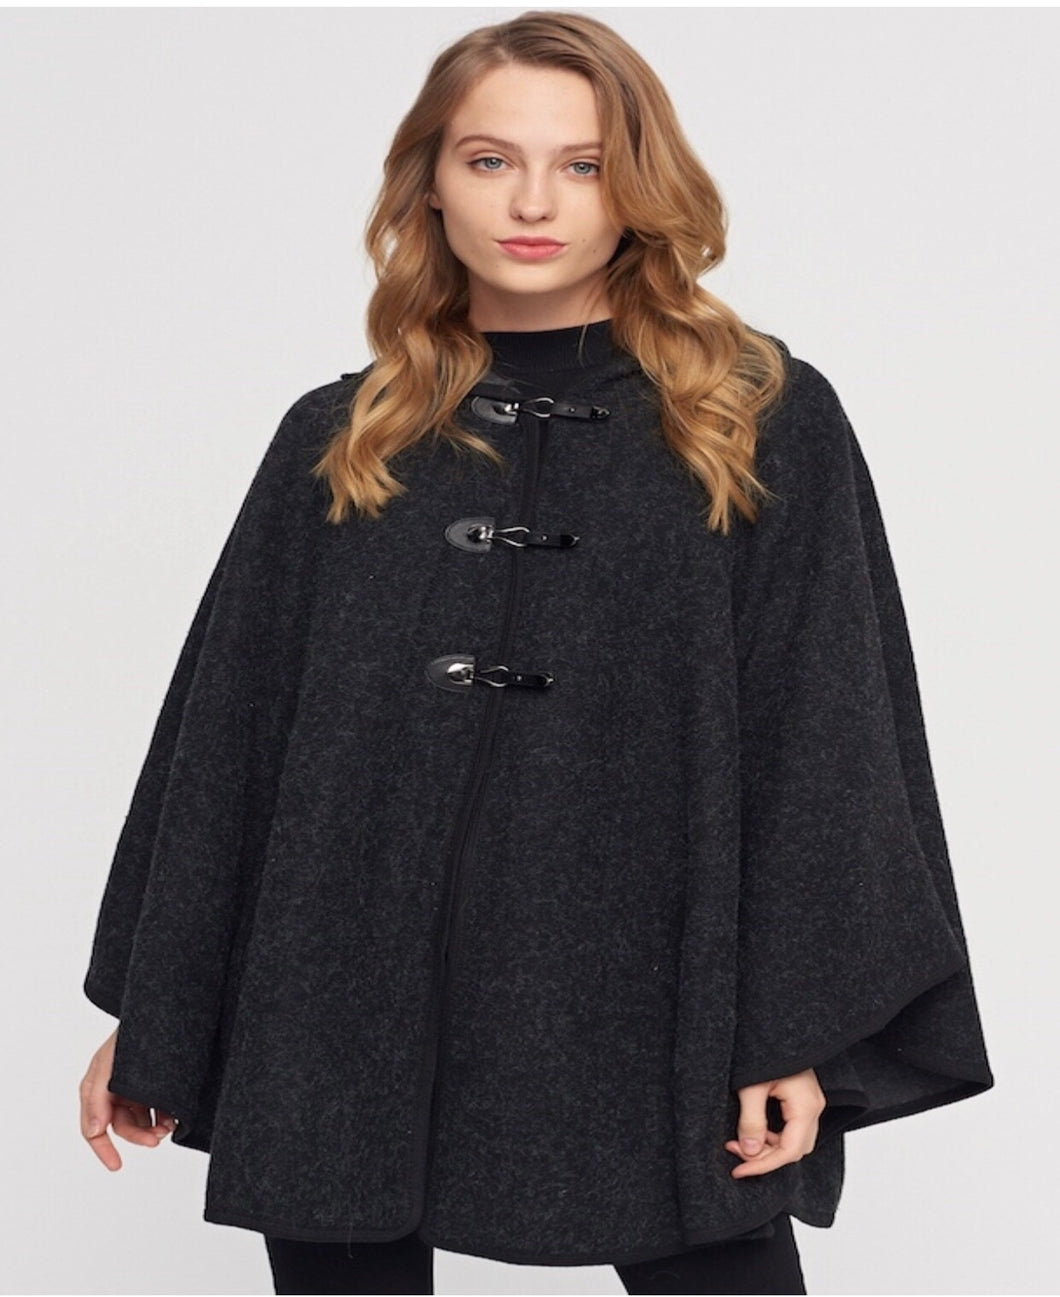 Black hooded poncho with 3 snap closure